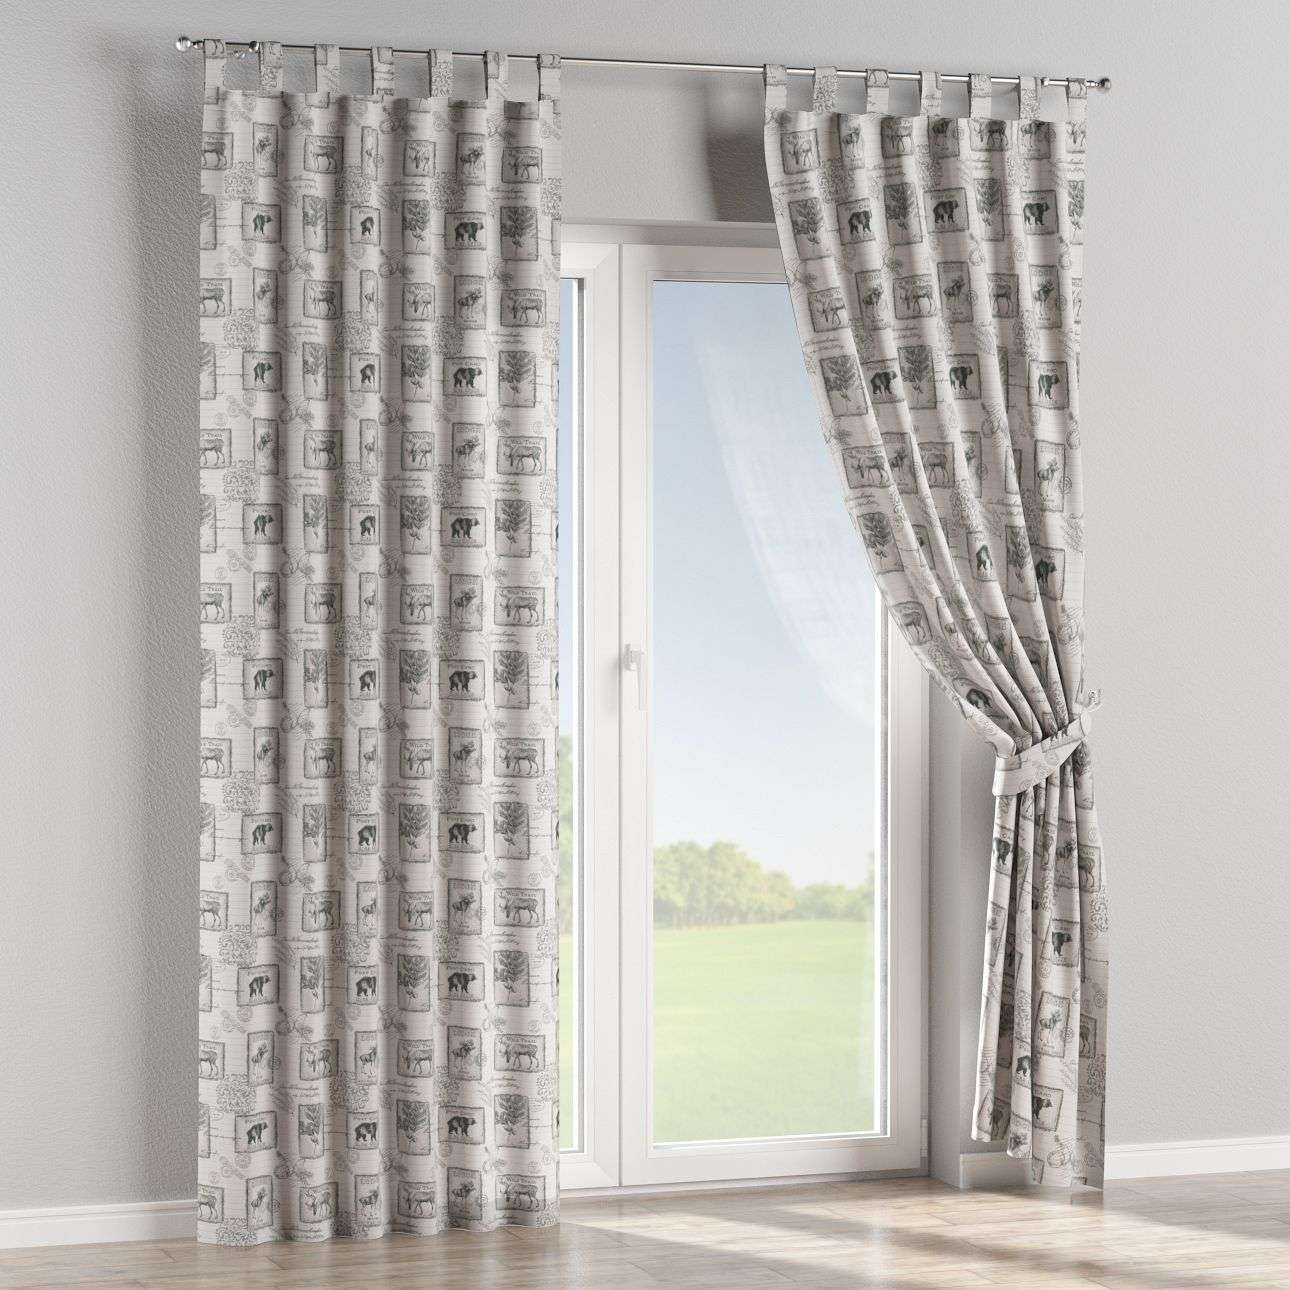 Tab top curtains 130 × 260 cm (51 × 102 inch) in collection SALE, fabric: 630-18